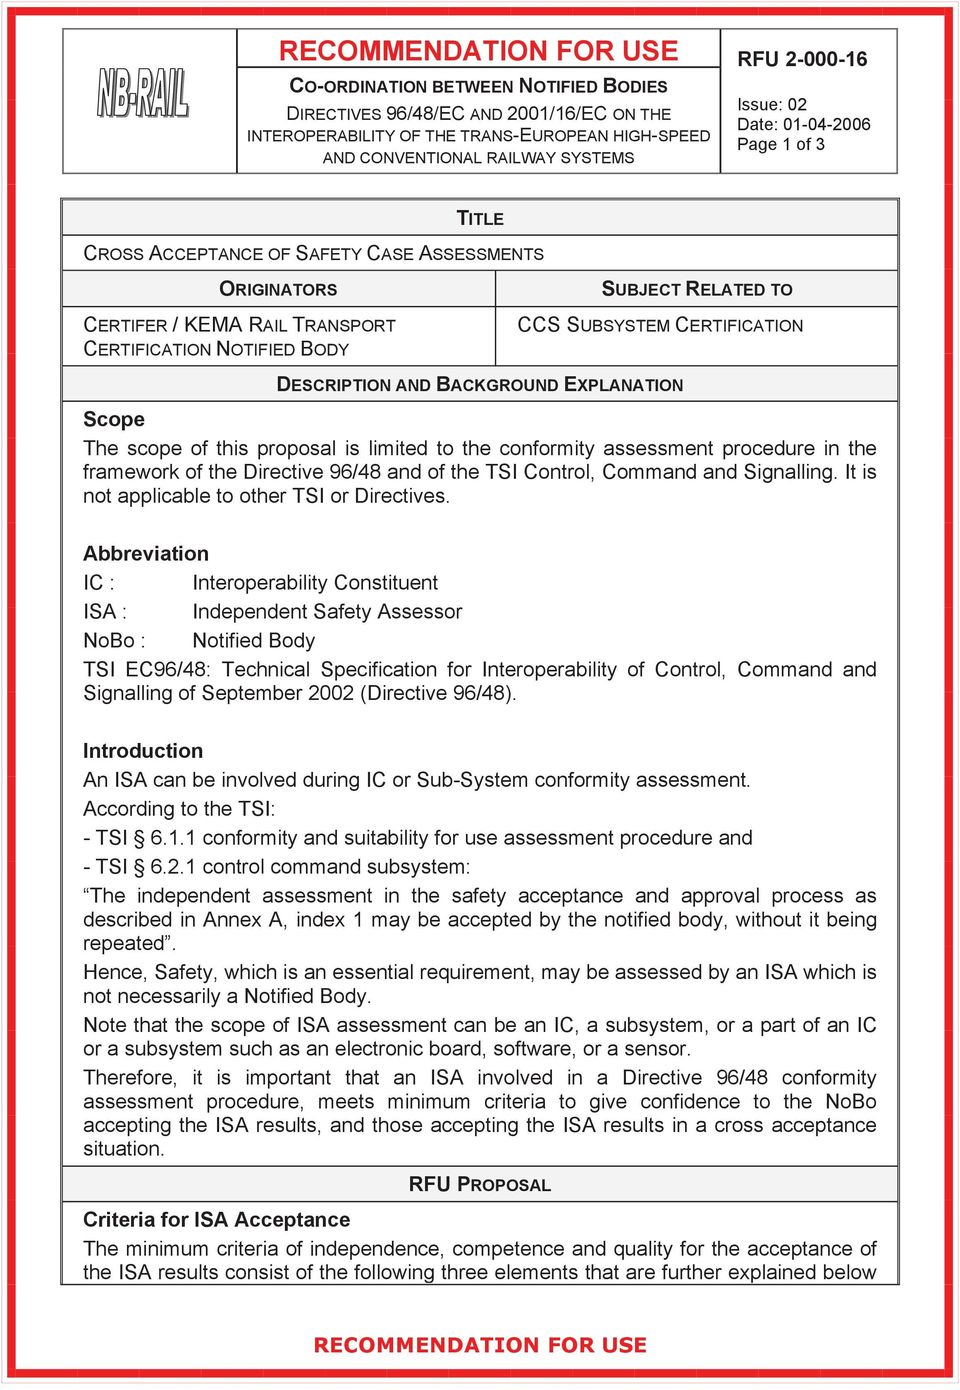 CERTIFICATION DESCRIPTION AND BACKGROUND EPLANATION Scope The scope of this proposal is limited to the conformity assessment procedure in the framework of the Directive 96/48 and of the TSI Control,